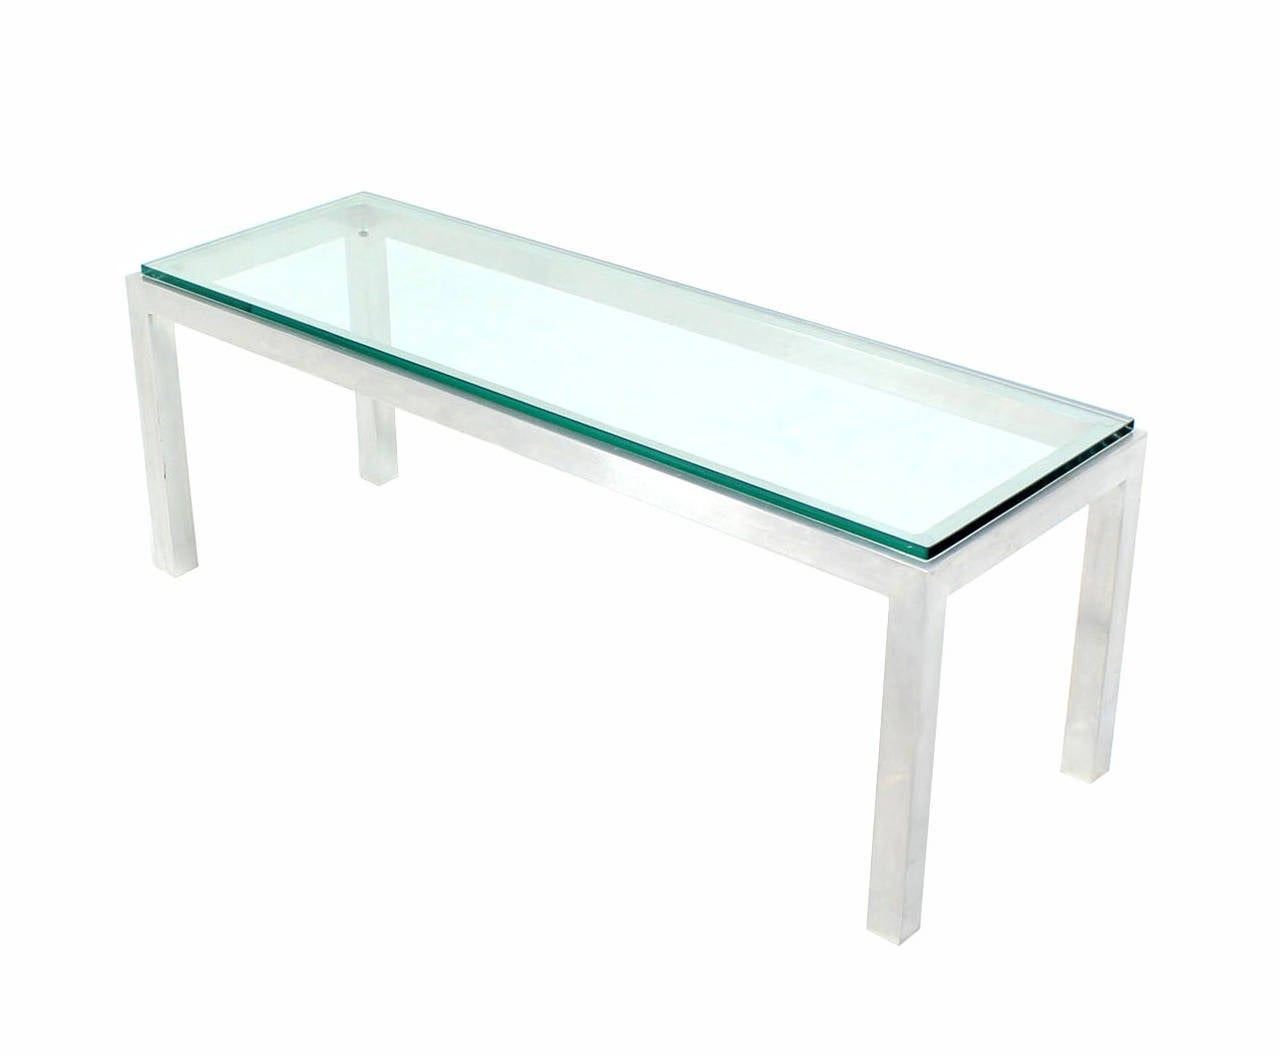 Square Aluminum Metal Frame Small Coffee Side Table Long Rectangle For Sale At 1stdibs